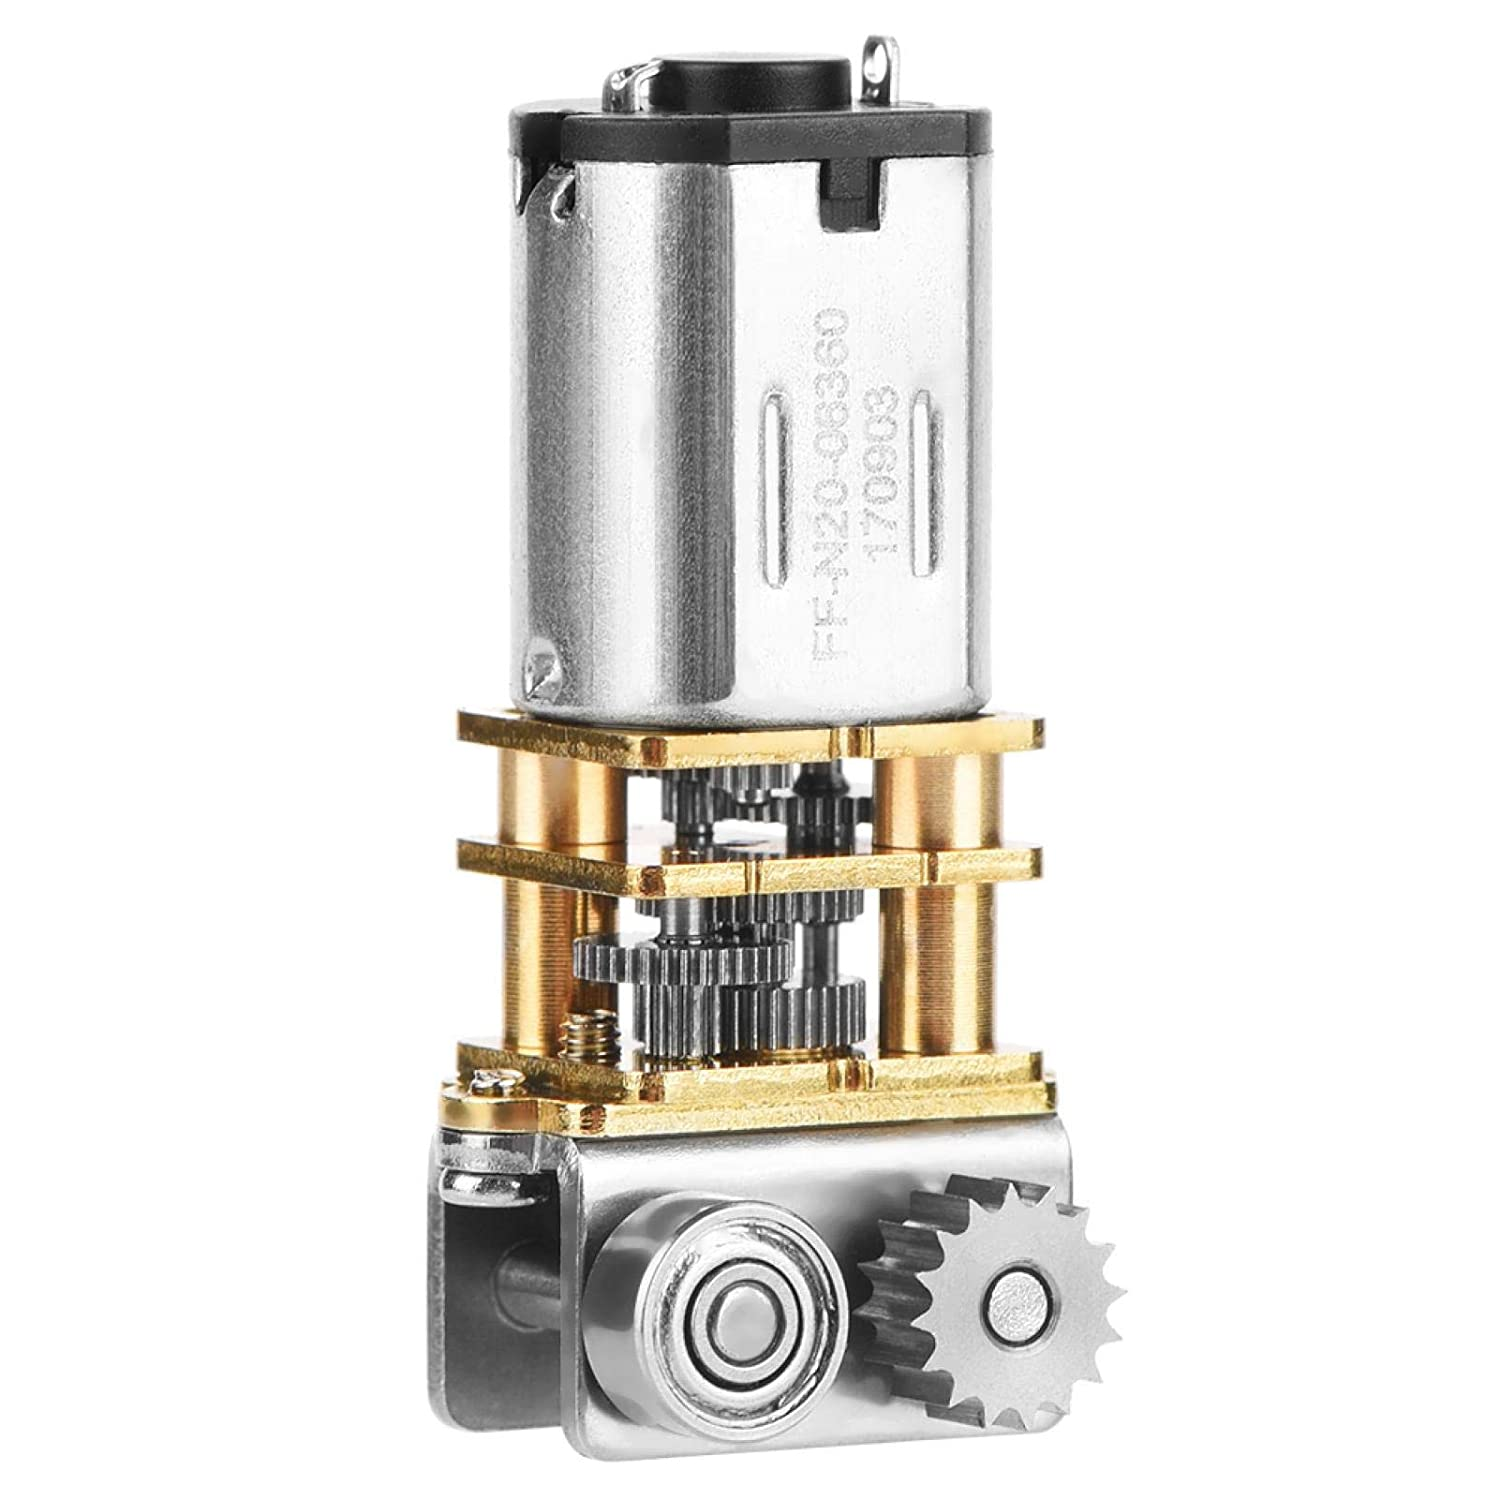 DC Motor Gear Dust-Proof Micro Max 72% OFF Latest item Wear-Resisting